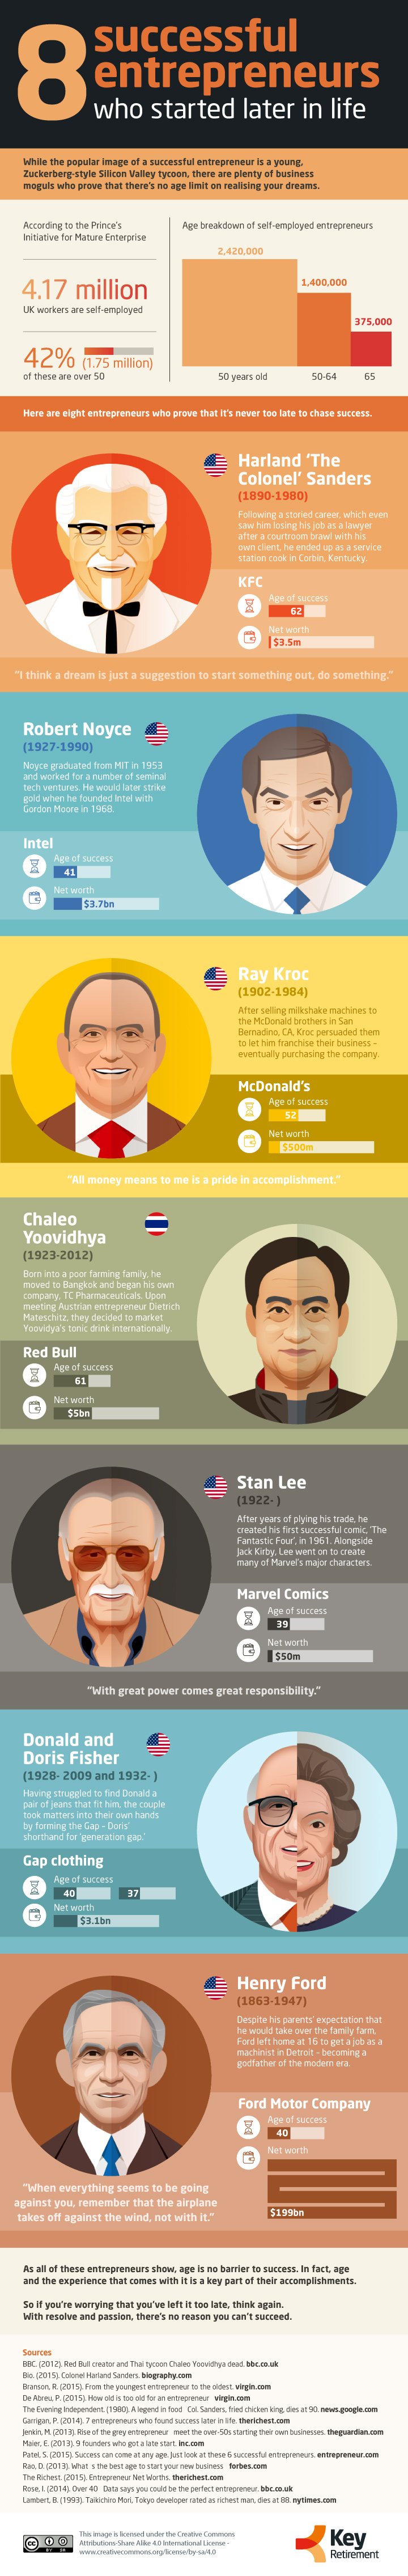 8 Successful Entrepreneurs Who Started Later In Life